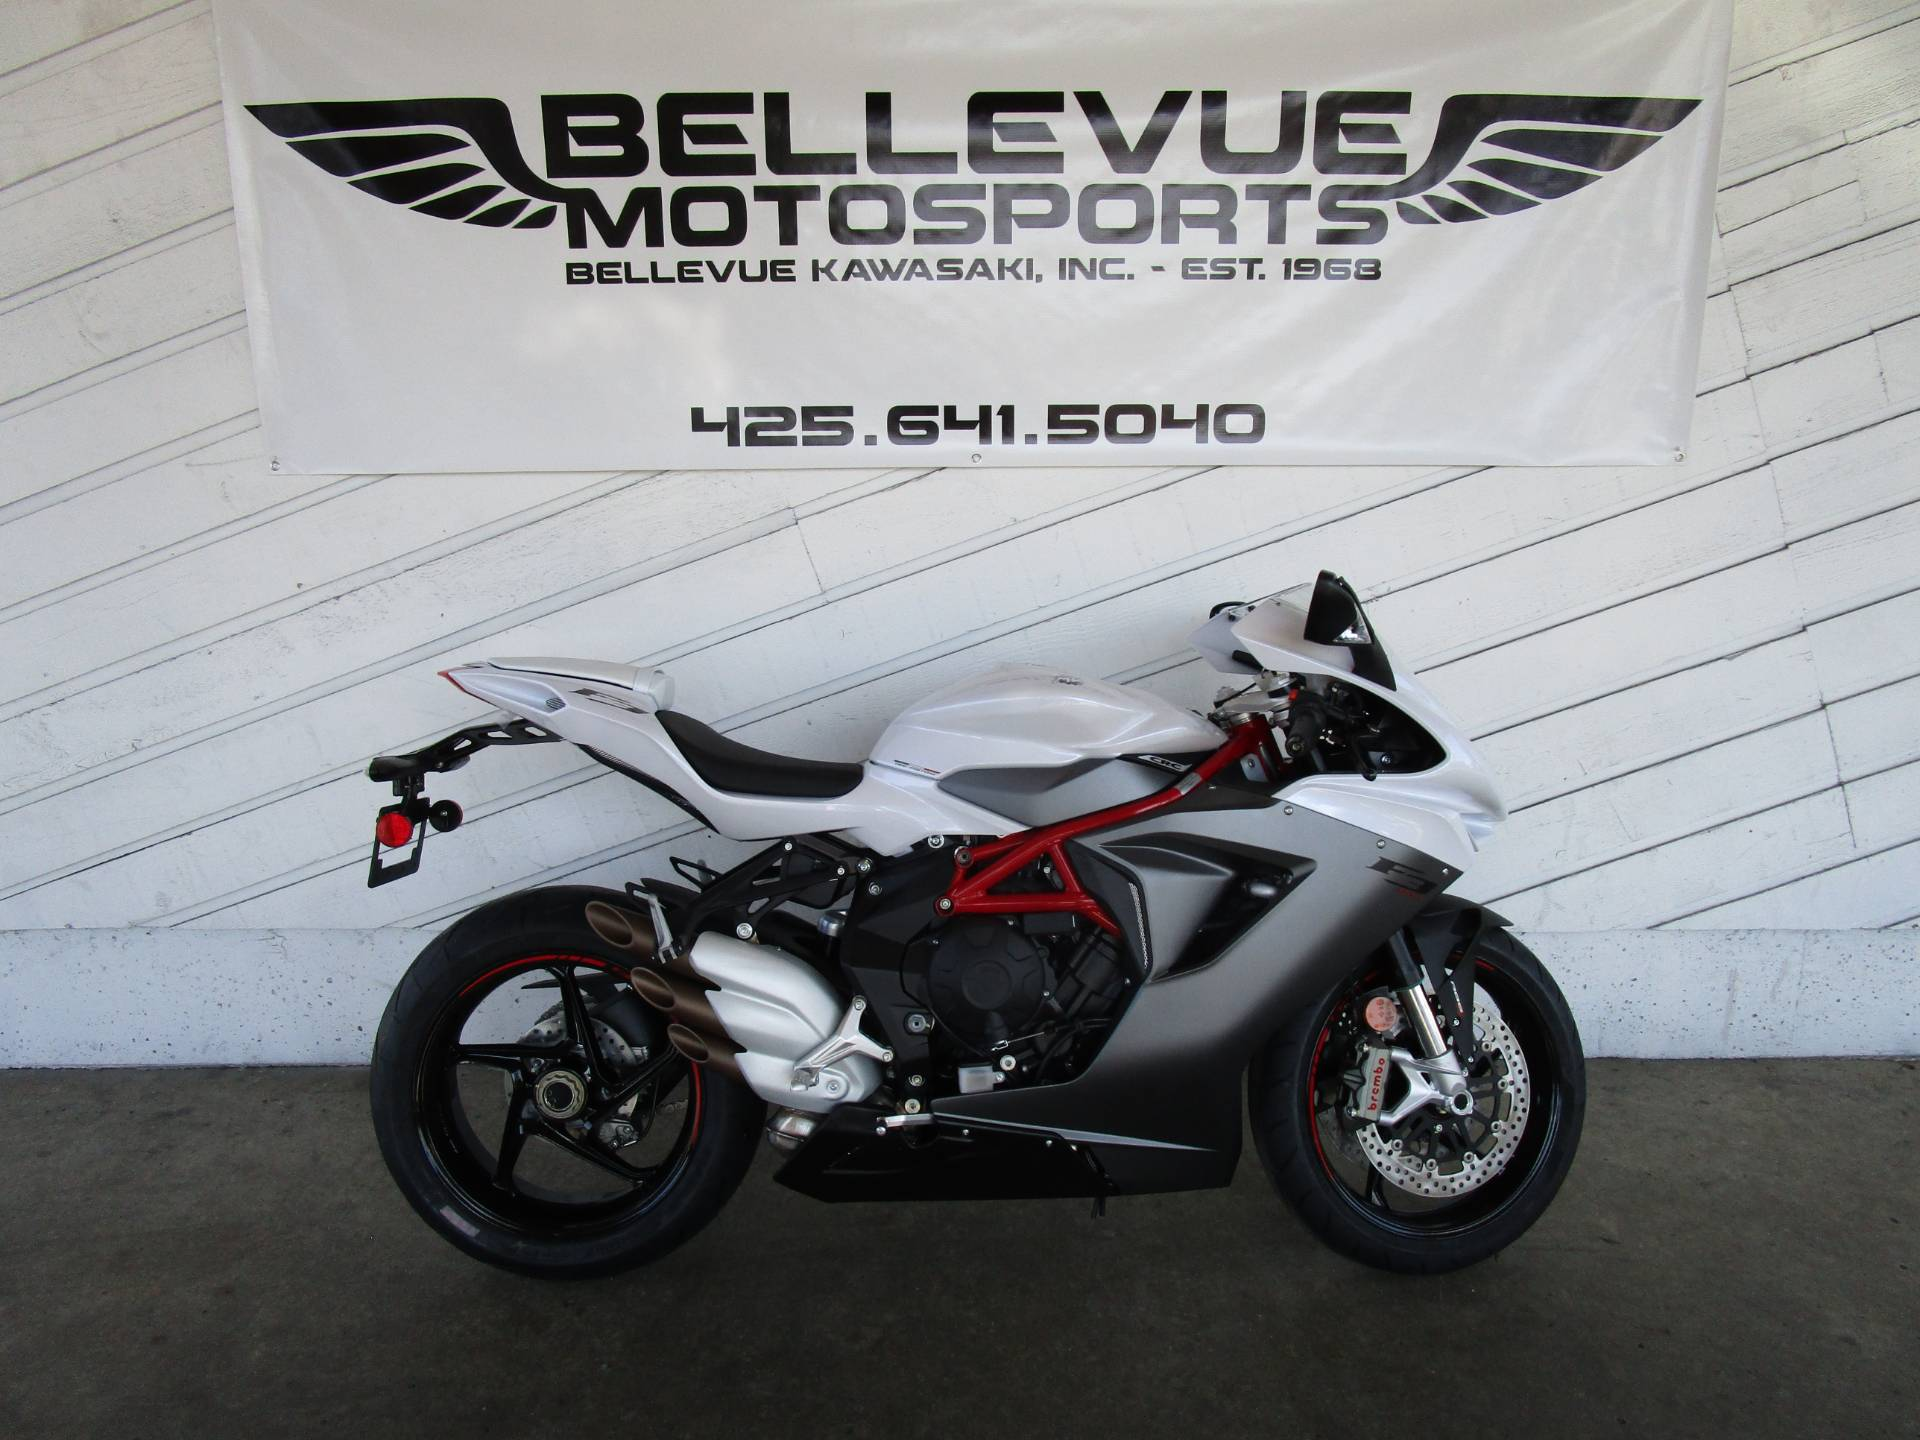 2018 MV Agusta F3 800 EAS ABS in Bellevue, Washington - Photo 1